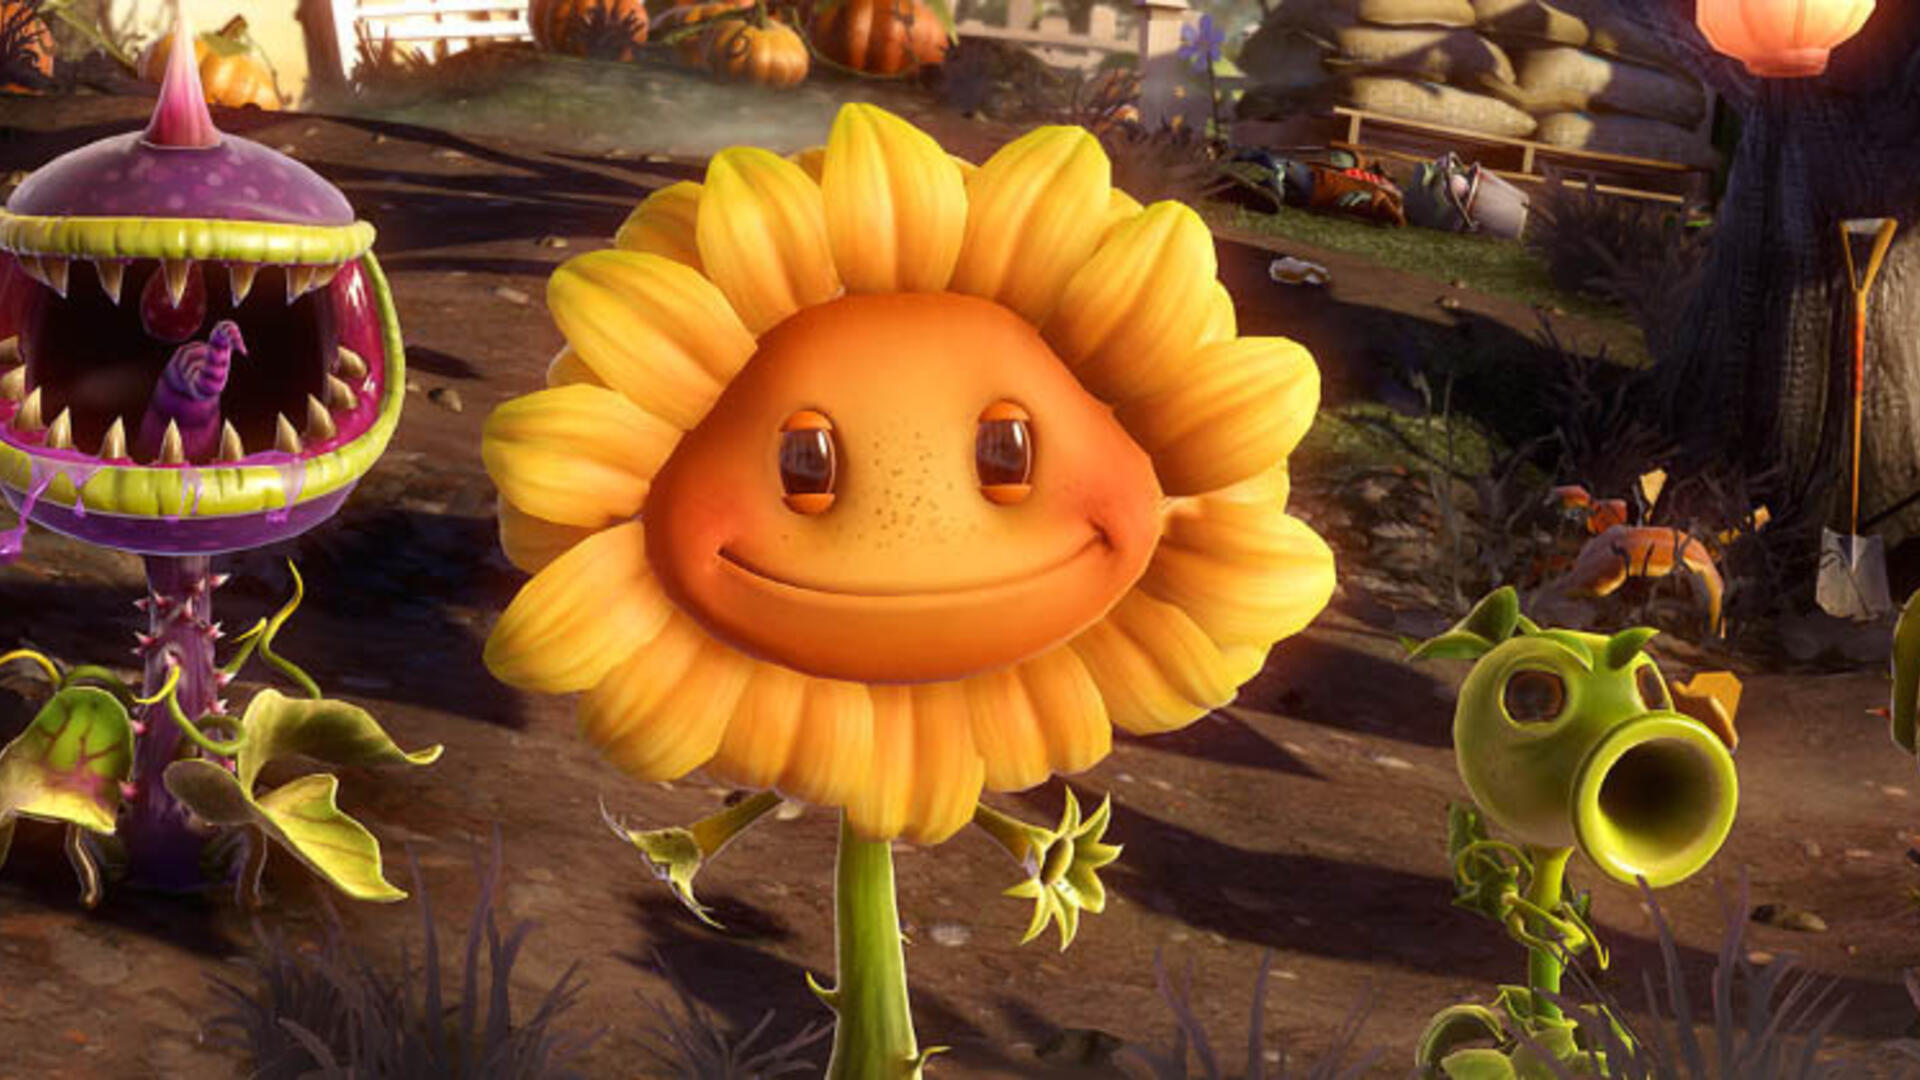 EA Adds Microtransactions to Plants vs. Zombies Garden Warfare